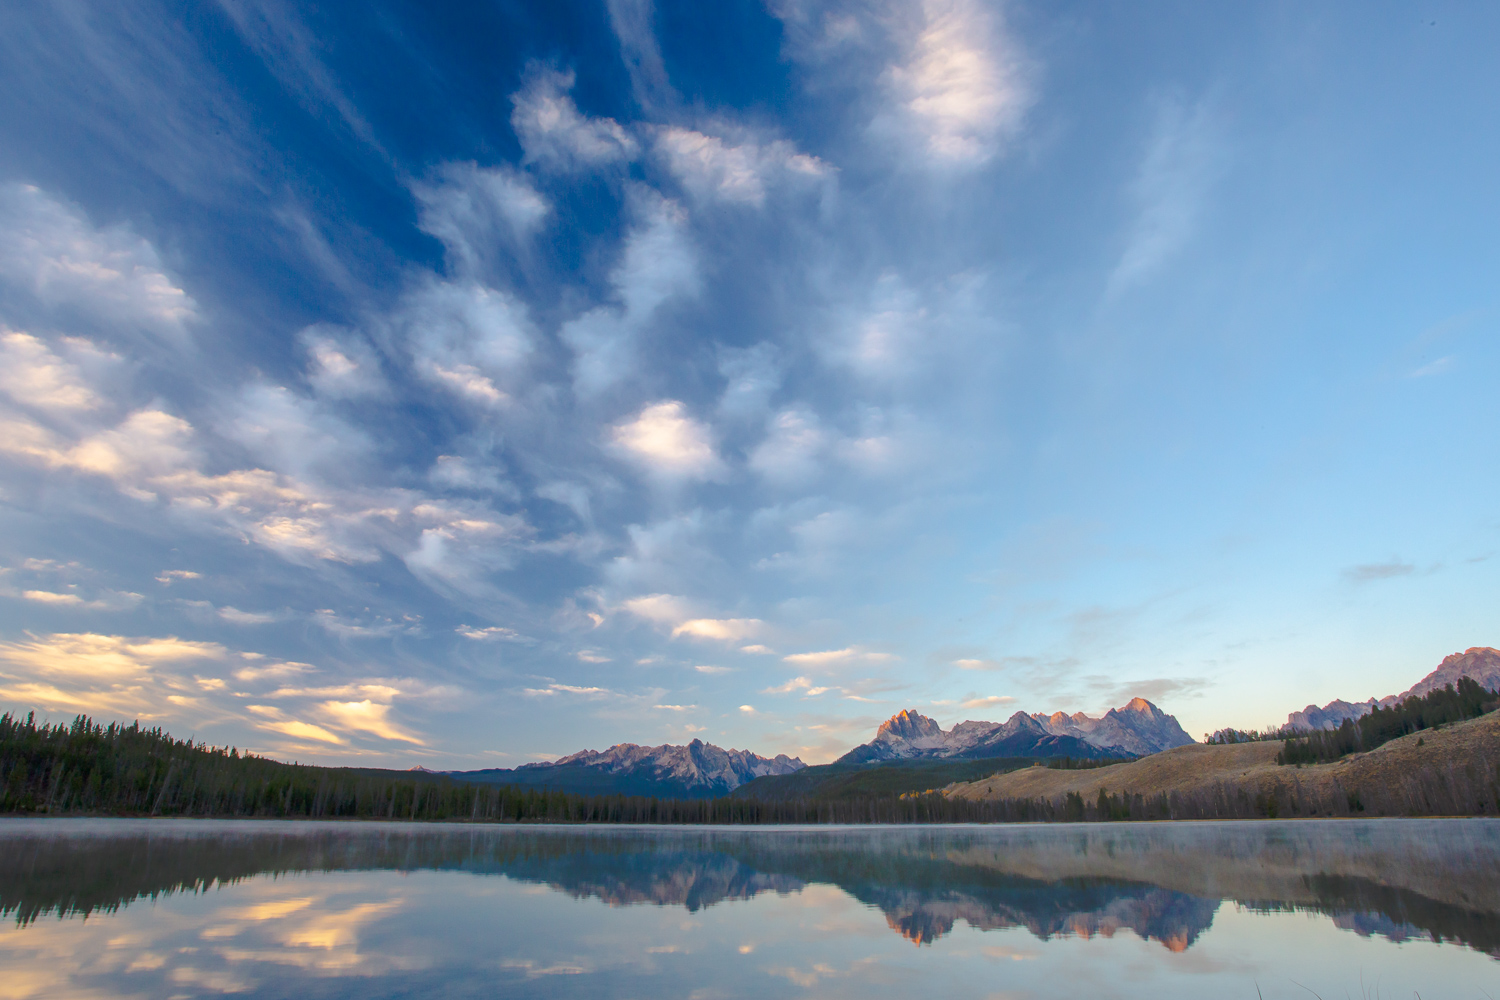 Tips for Dramatic Skies - Wide angle plus polarizer a bad combination